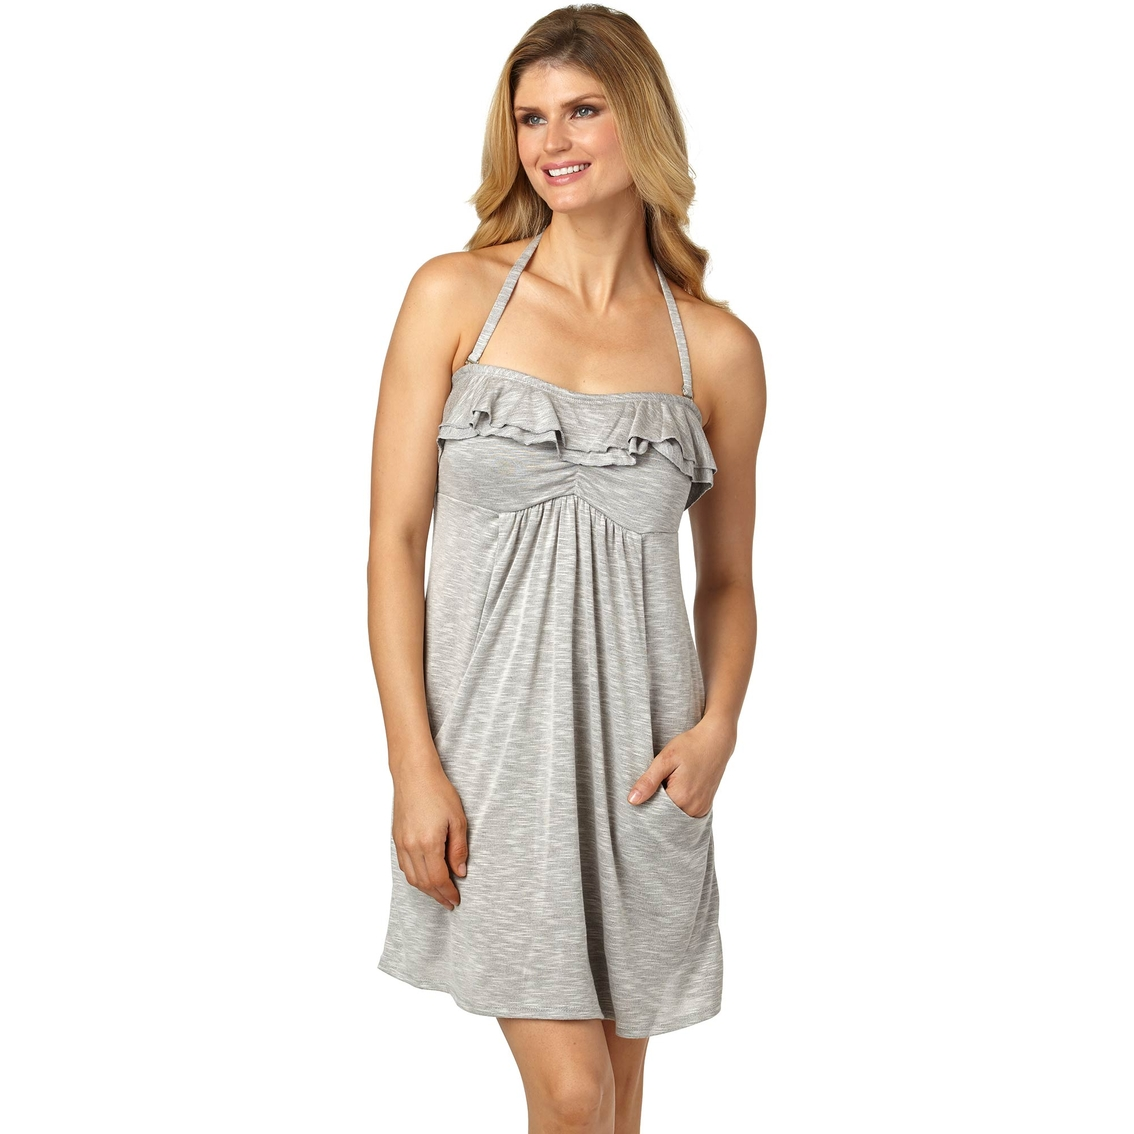 Strapless necklines are eternally flattering, so this cover up will look gorgeous worn over your bikini. It's decorated with shirring detail around the neckline and crafted in .